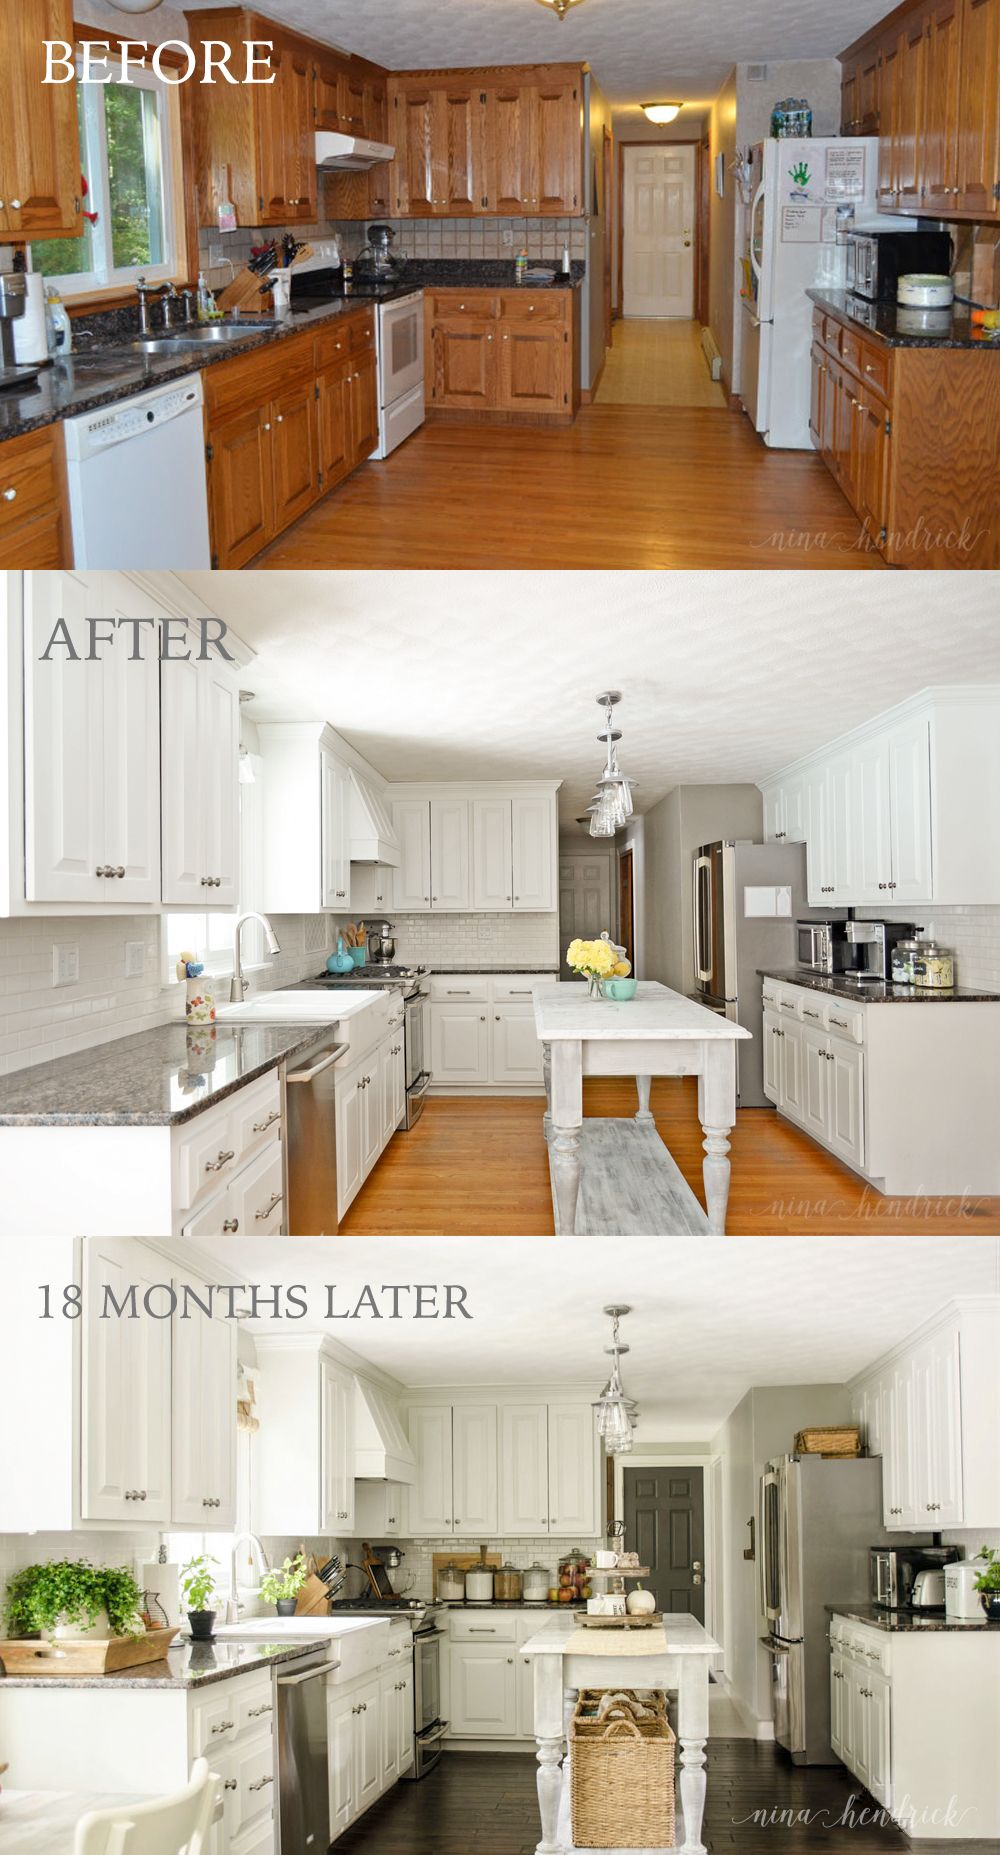 White painted kitchen before after  months later by nina hendrick also how to paint oak cabinets and hide the grain house design ideas rh pinterest